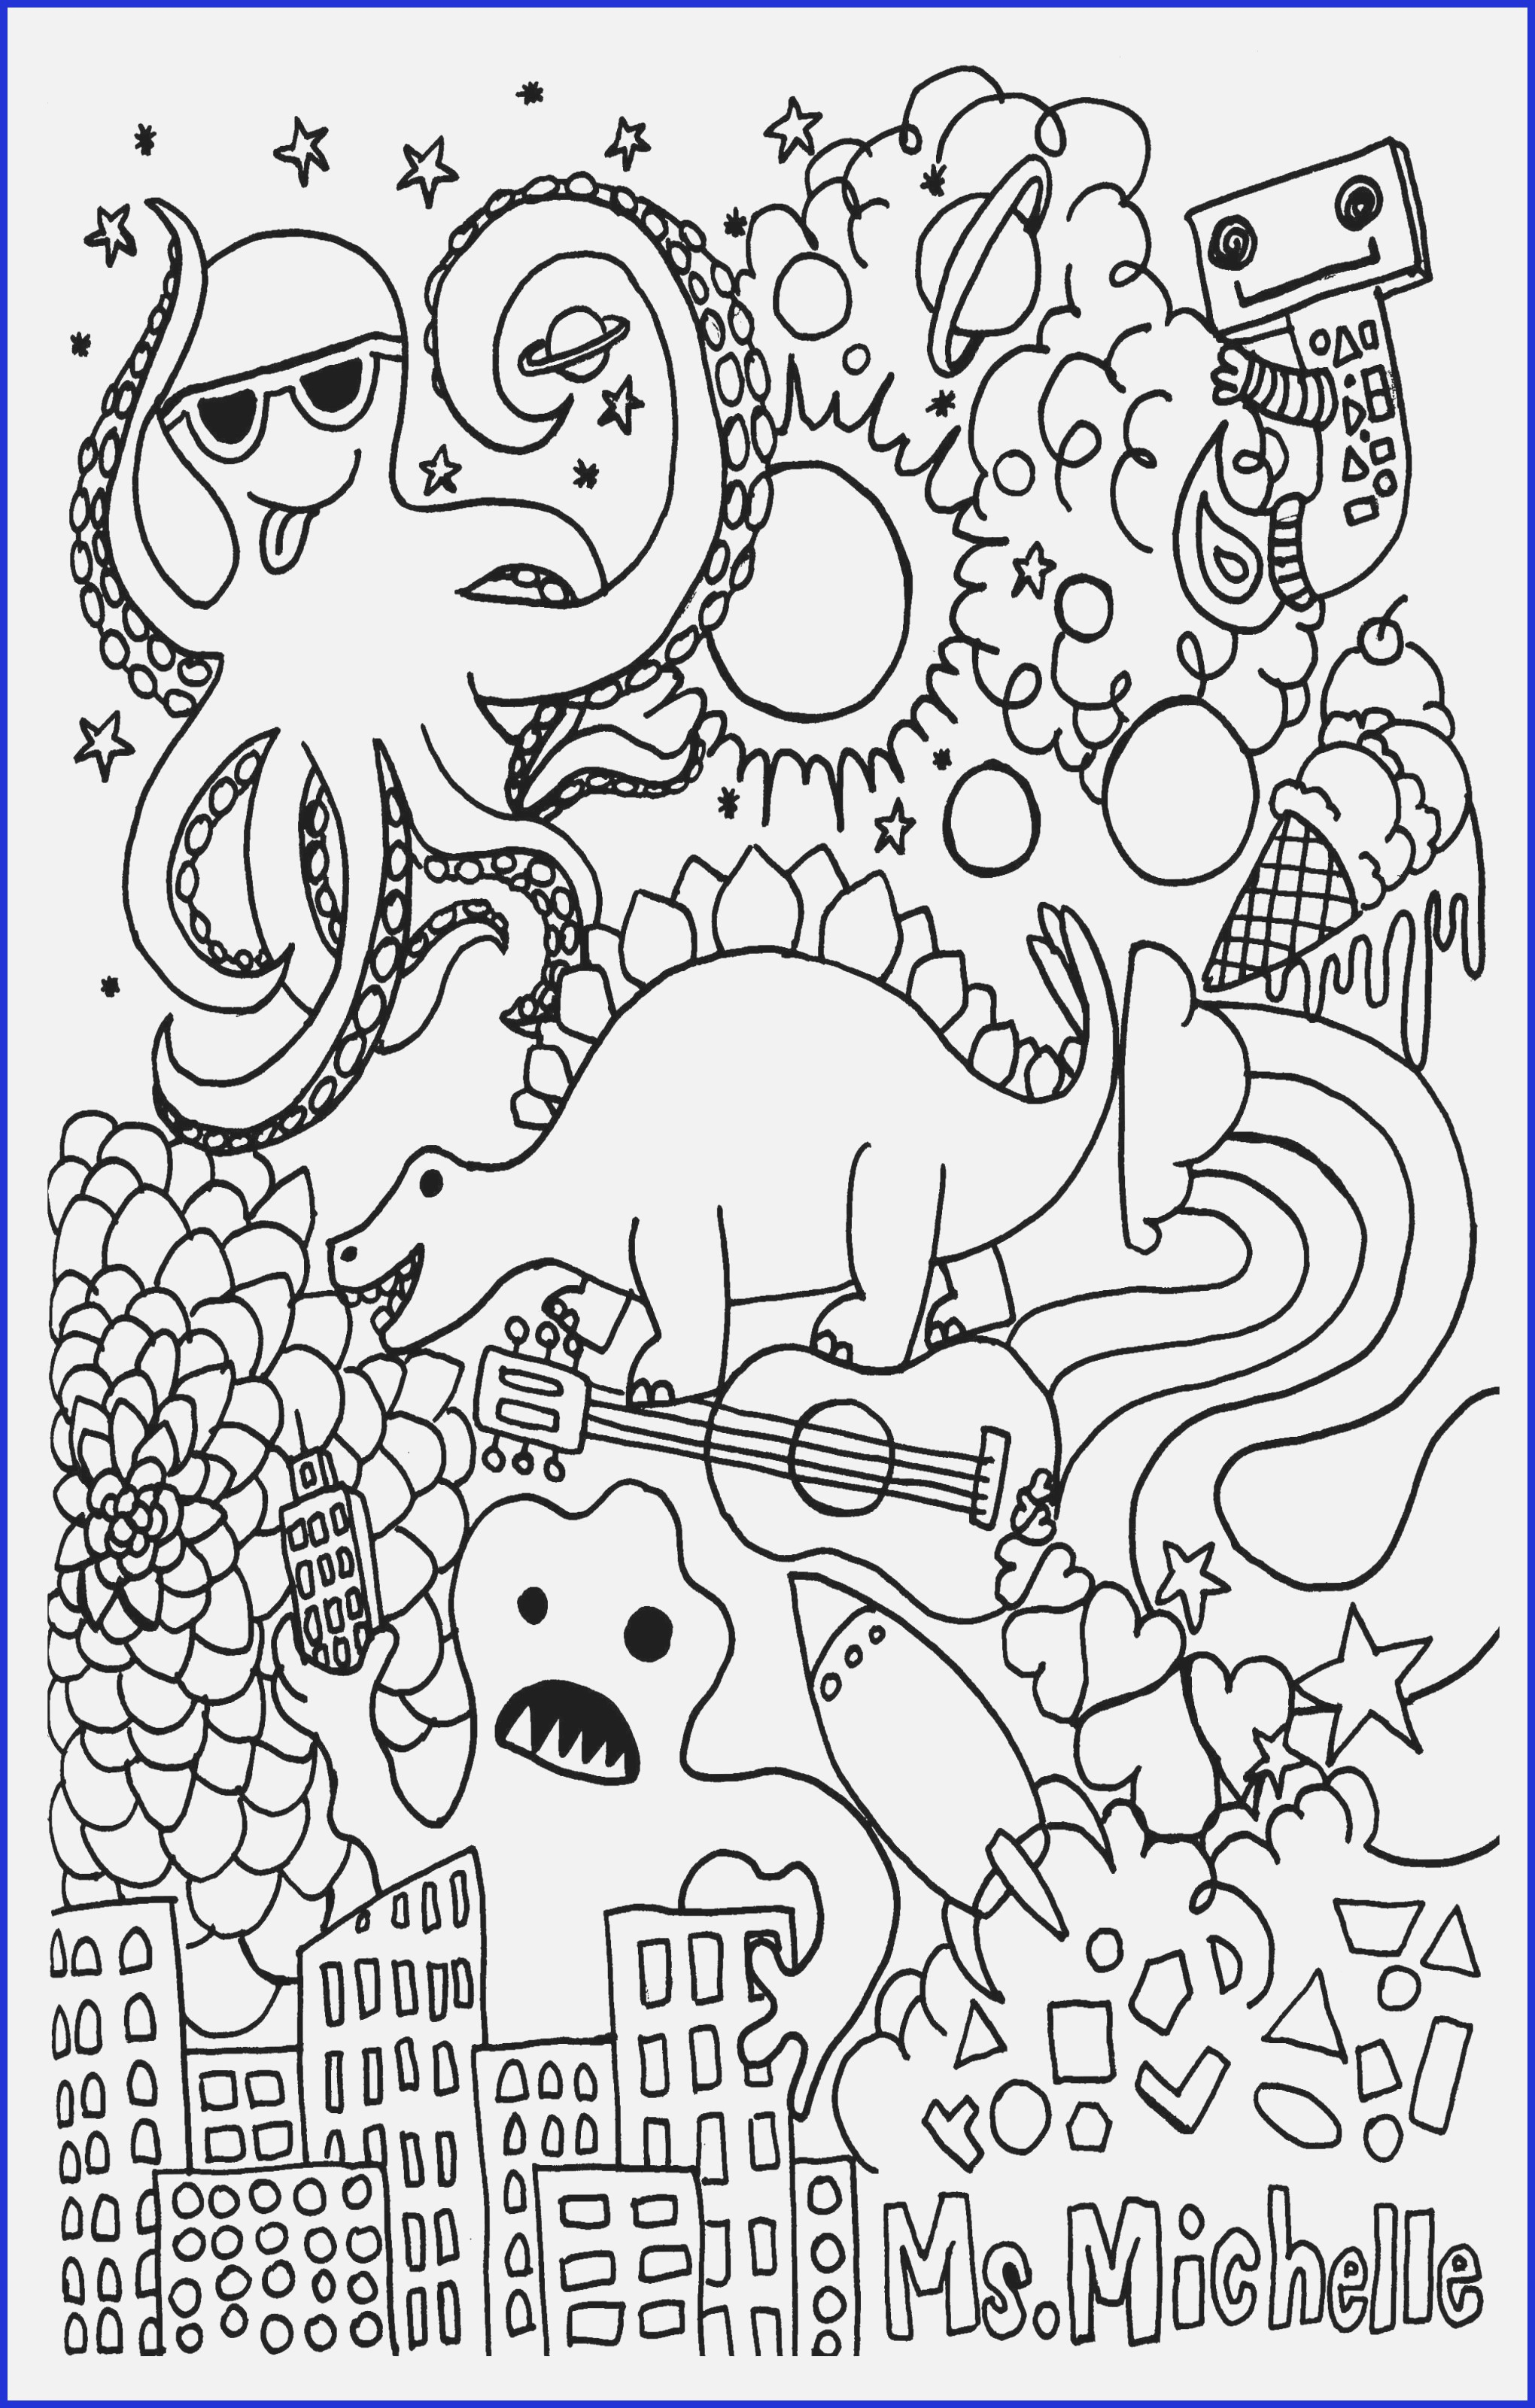 Earth Day Coloring Pages Coloring Book Earth Day Coloring Sheets For Kids Printable Free